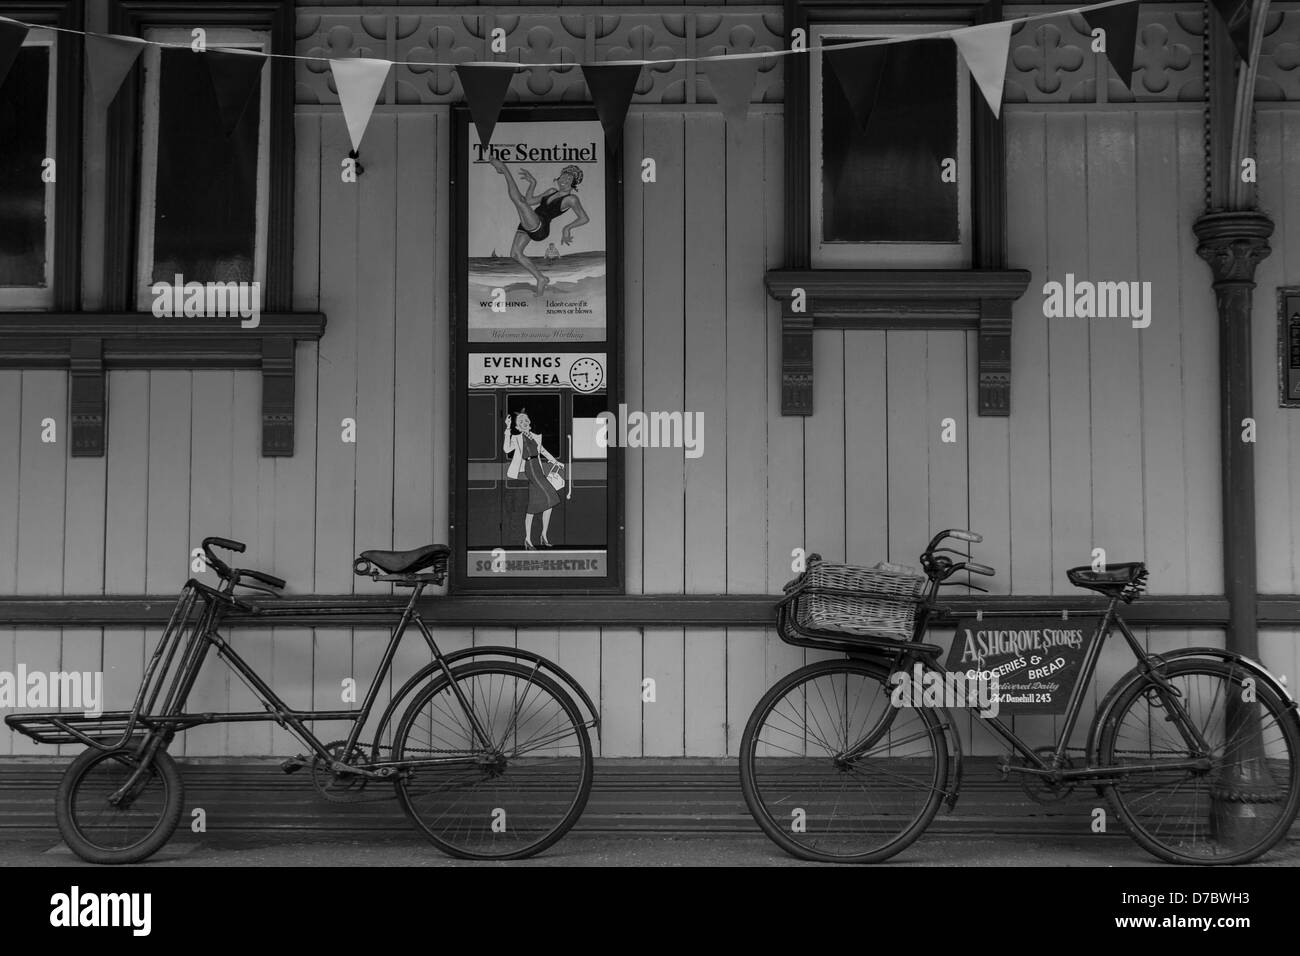 A monochrome image of a station building on the Bluebell Railway showing adverts and two old push bikes. - Stock Image